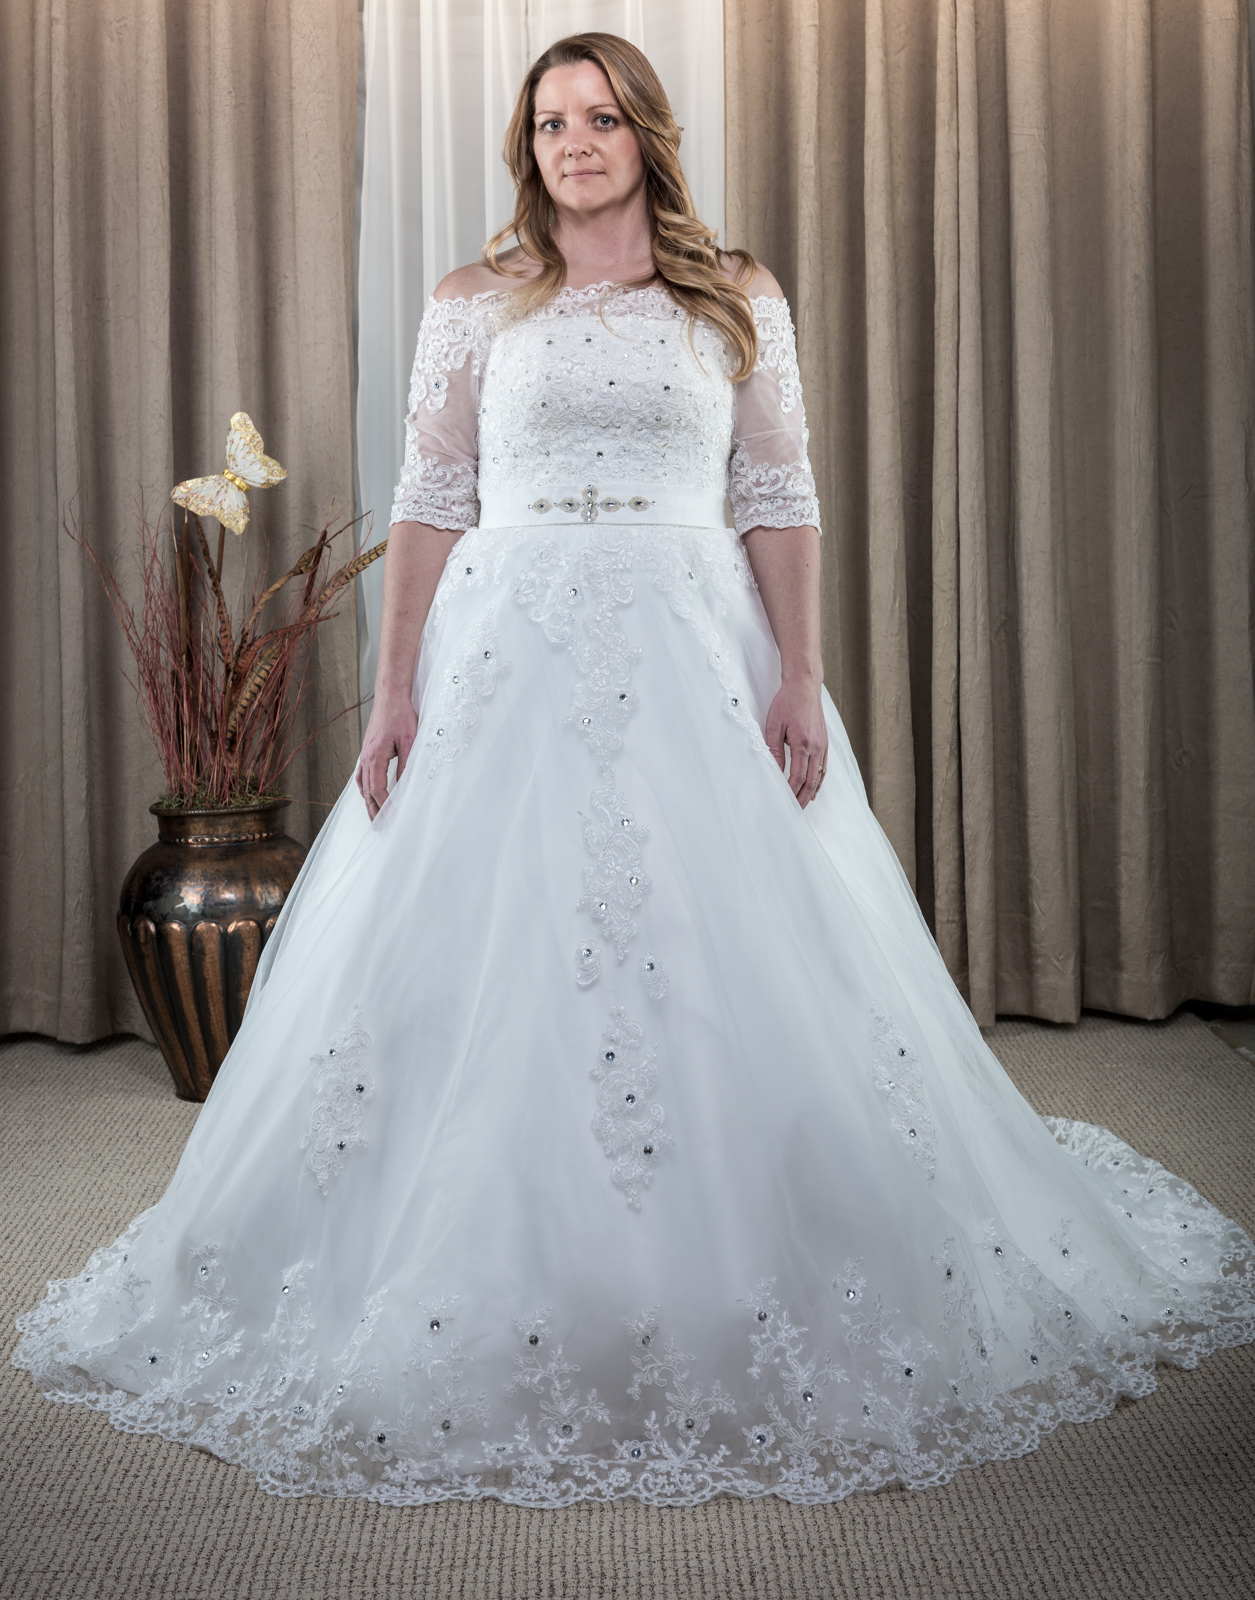 Lace & Applique Boat Neck Wedding Dress Ivory Size 12